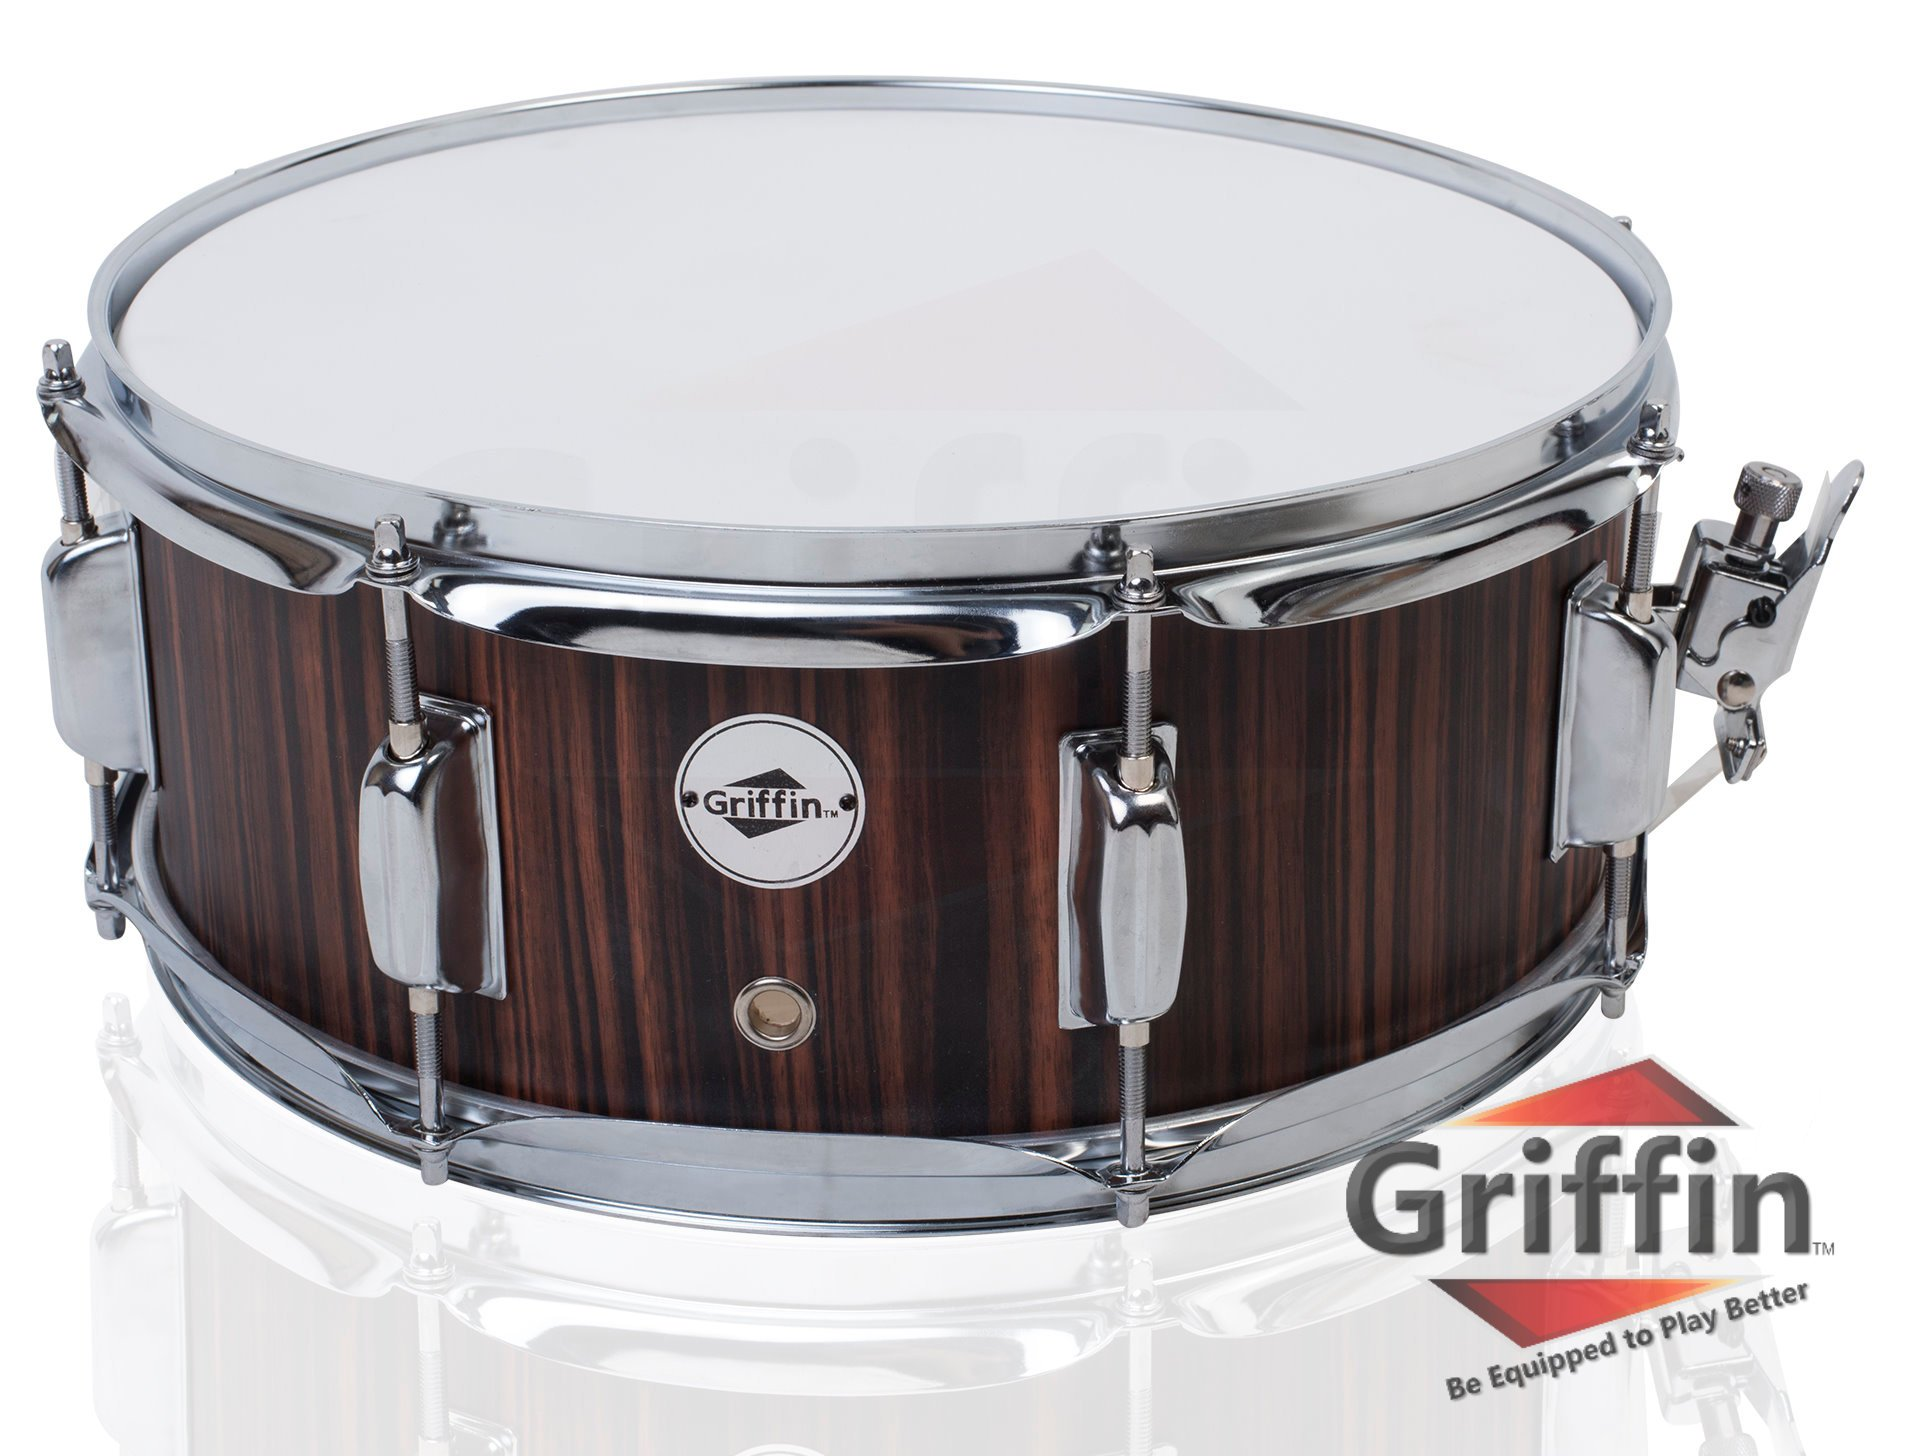 Snare Drum by Griffin | Black Hickory PVC Glossy Finish on Poplar Wood Shell 14'' x 5.5'' | Percussion Musical Instrument with Drummers Key for Students & Professionals | 8 Lugs & Deluxe Snare Strainer by Griffin